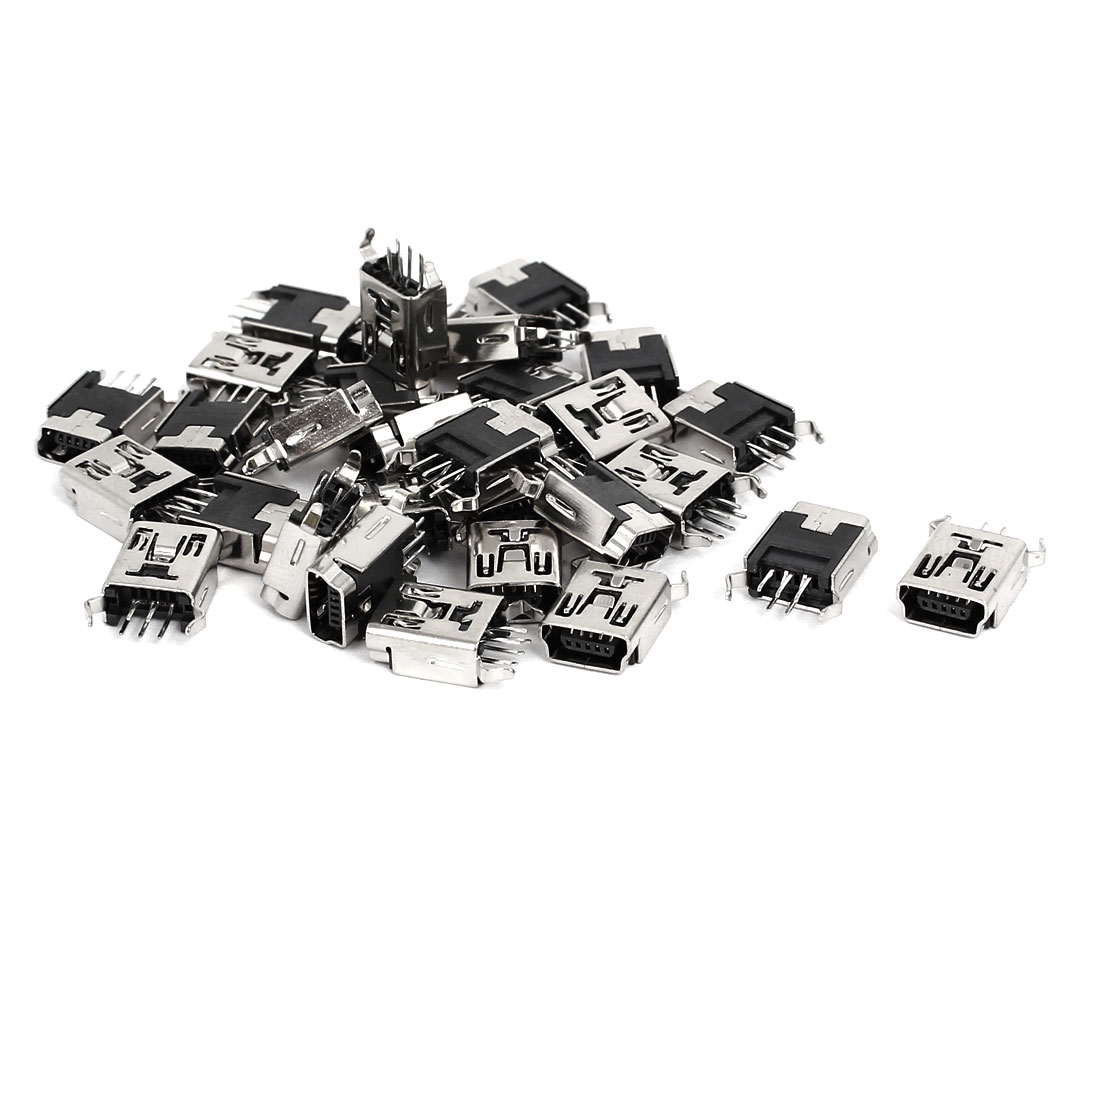 Mini USB 5P Type B Female Straight Pin Jack Socket SMD Connector Adapter 30pcs